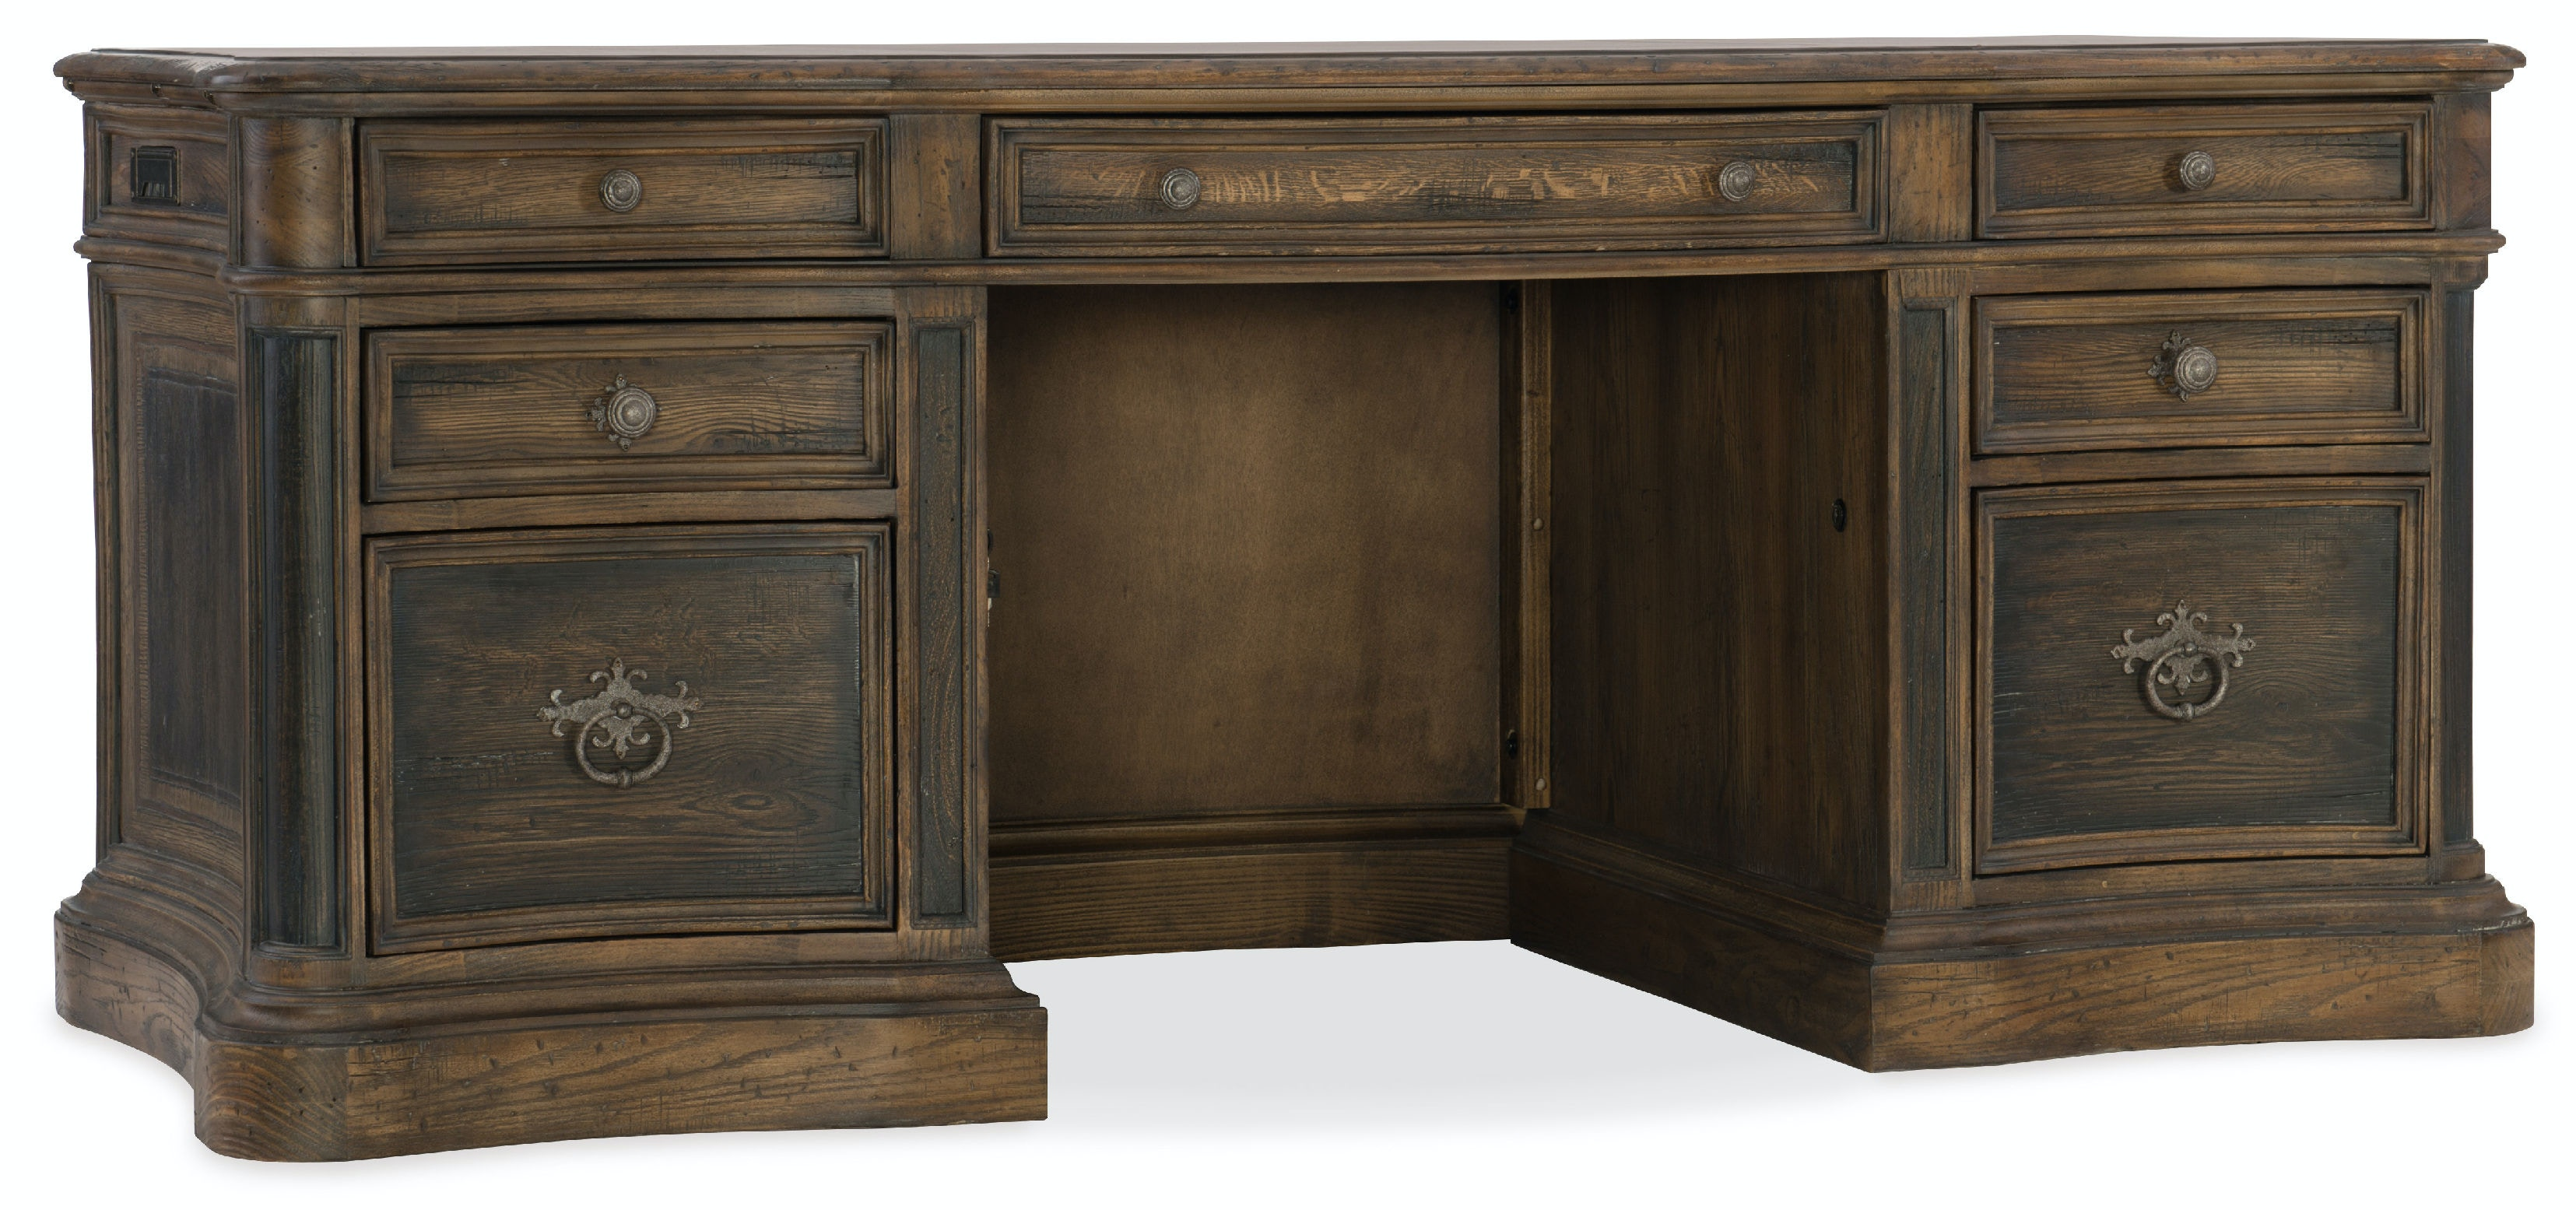 Hooker Furniture St. Hedwig Executive Desk 5960 10563 MULTI